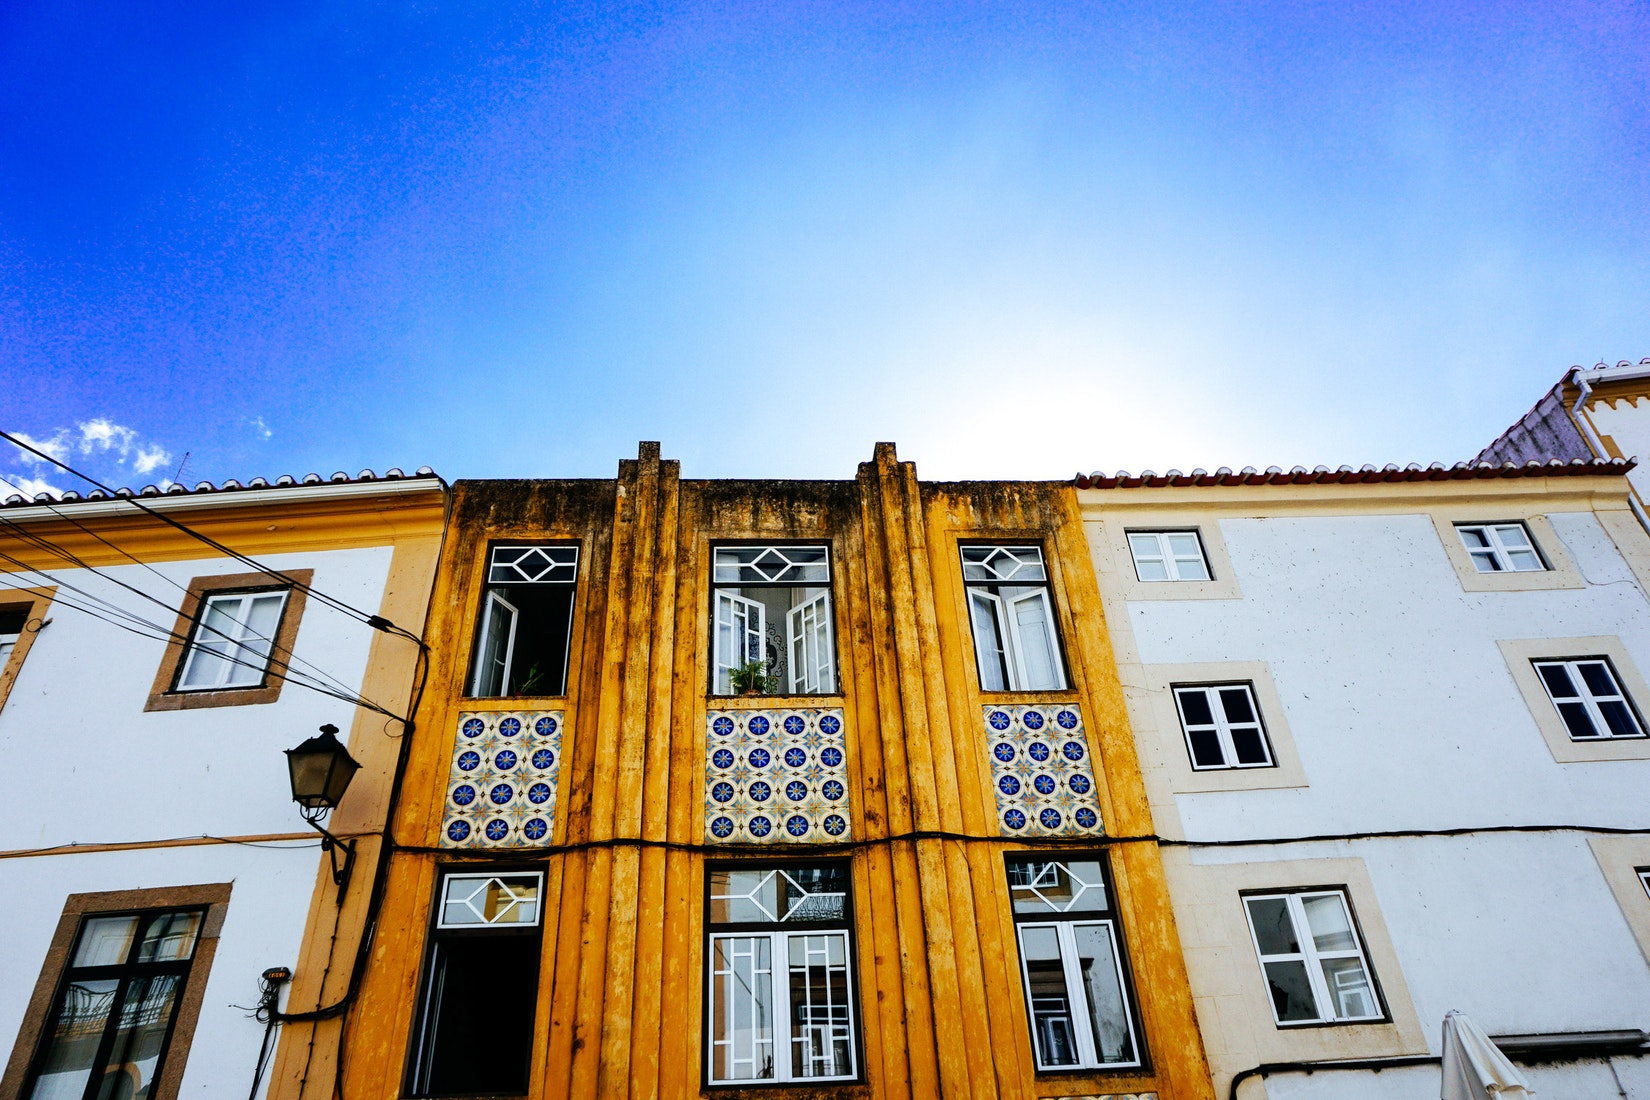 Art deco architecture in Castelo de Vide, Portugal